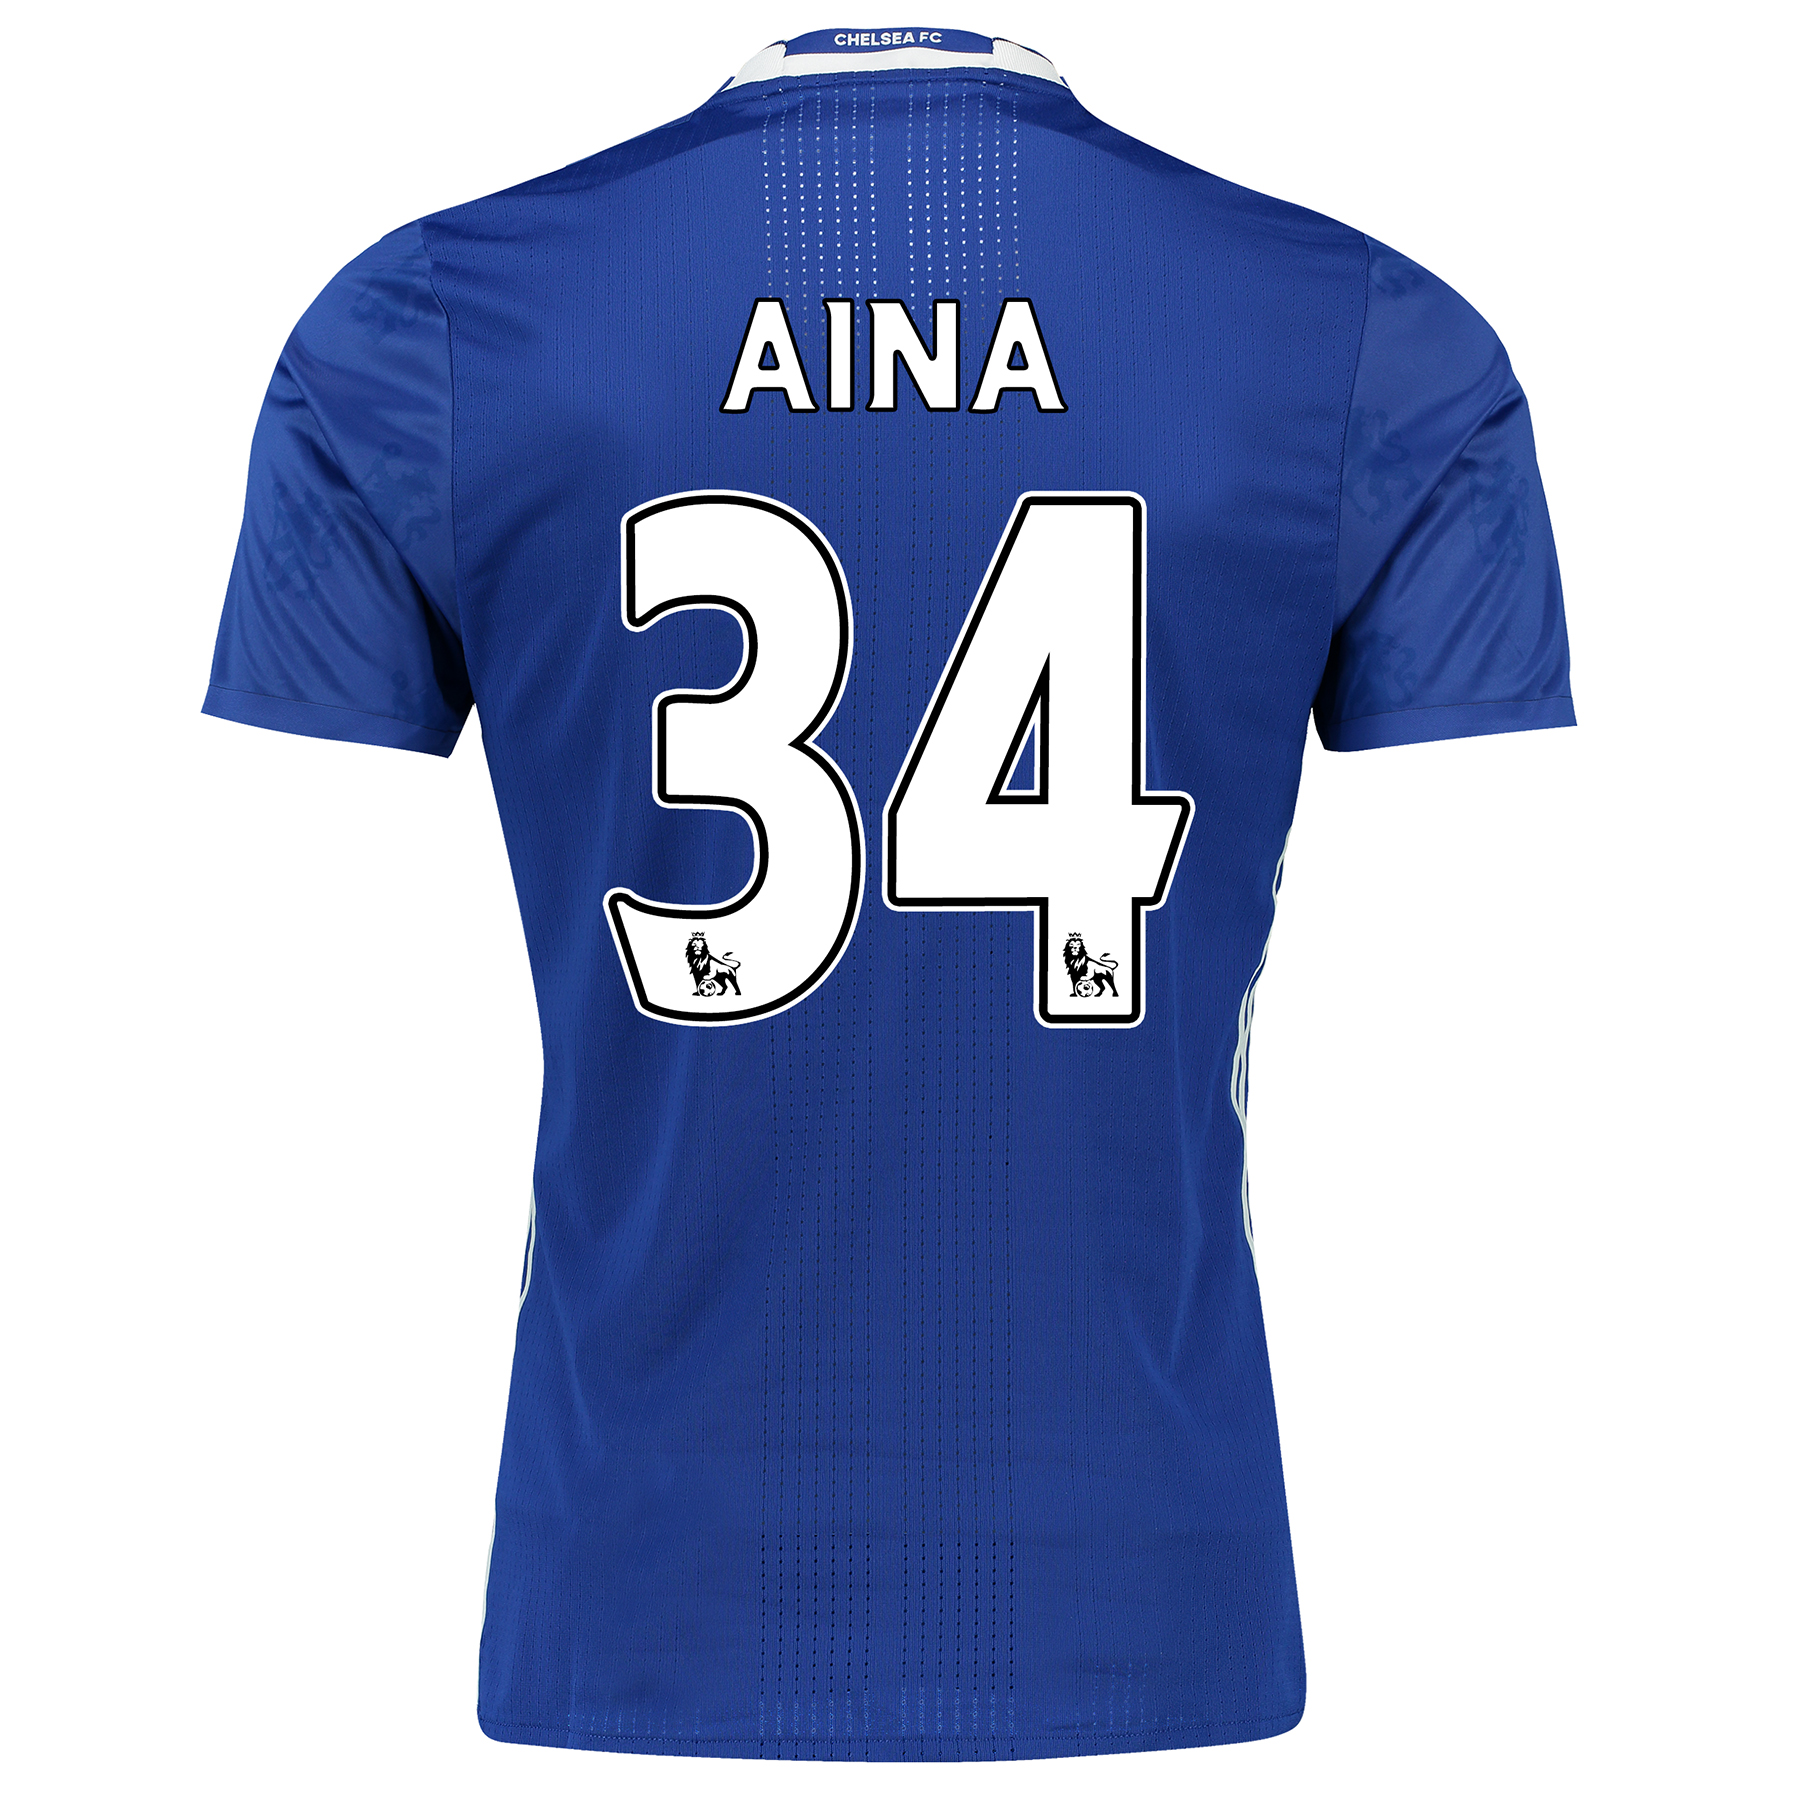 Shop Aina Printed Shirts